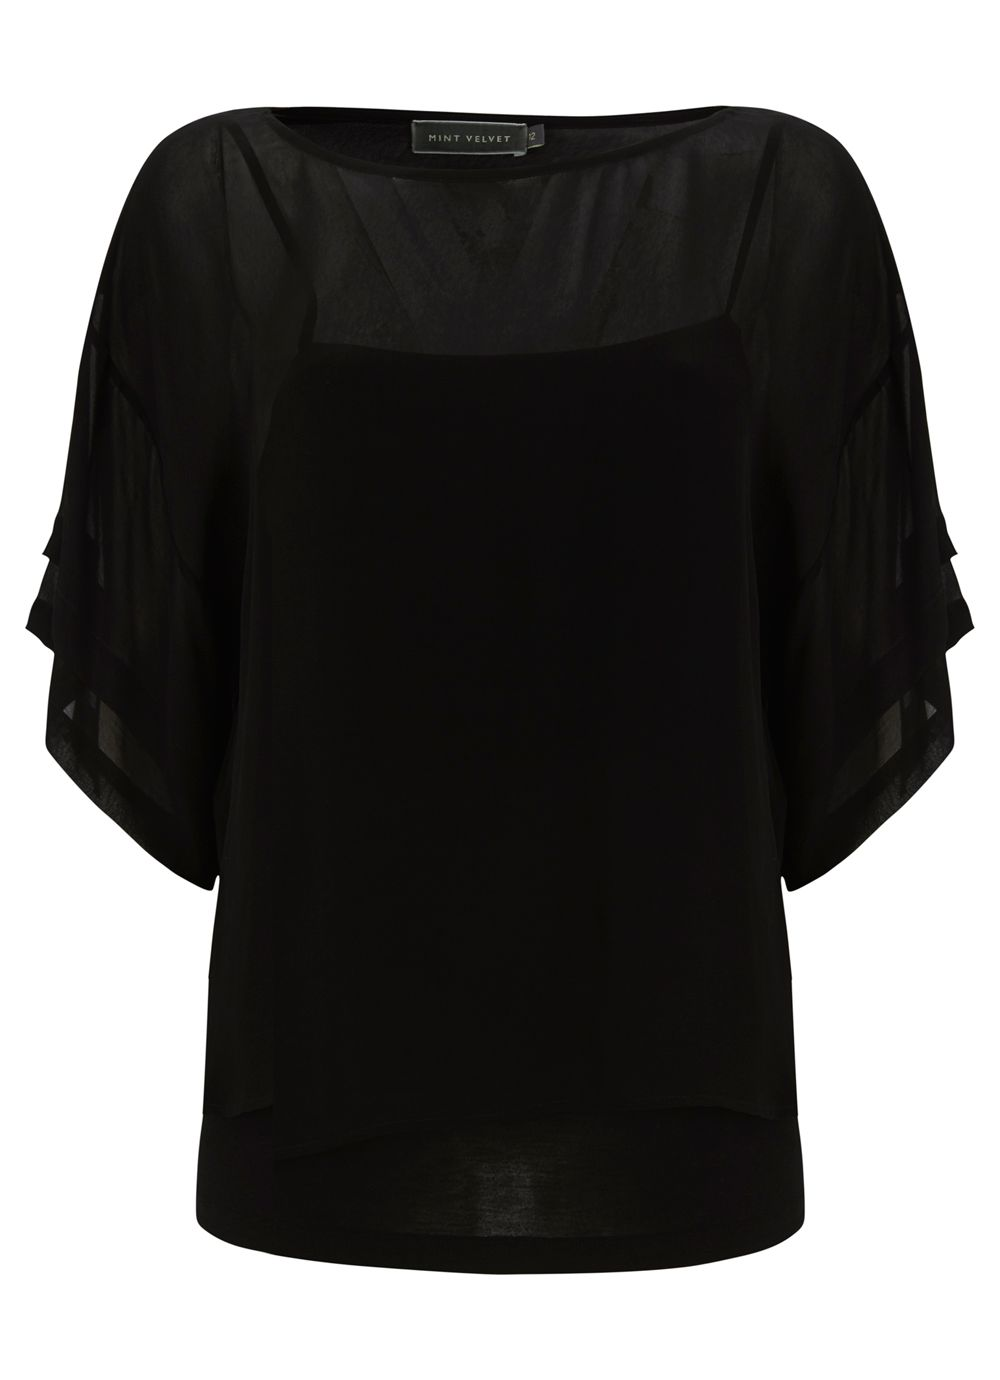 Black pleat sleeve top